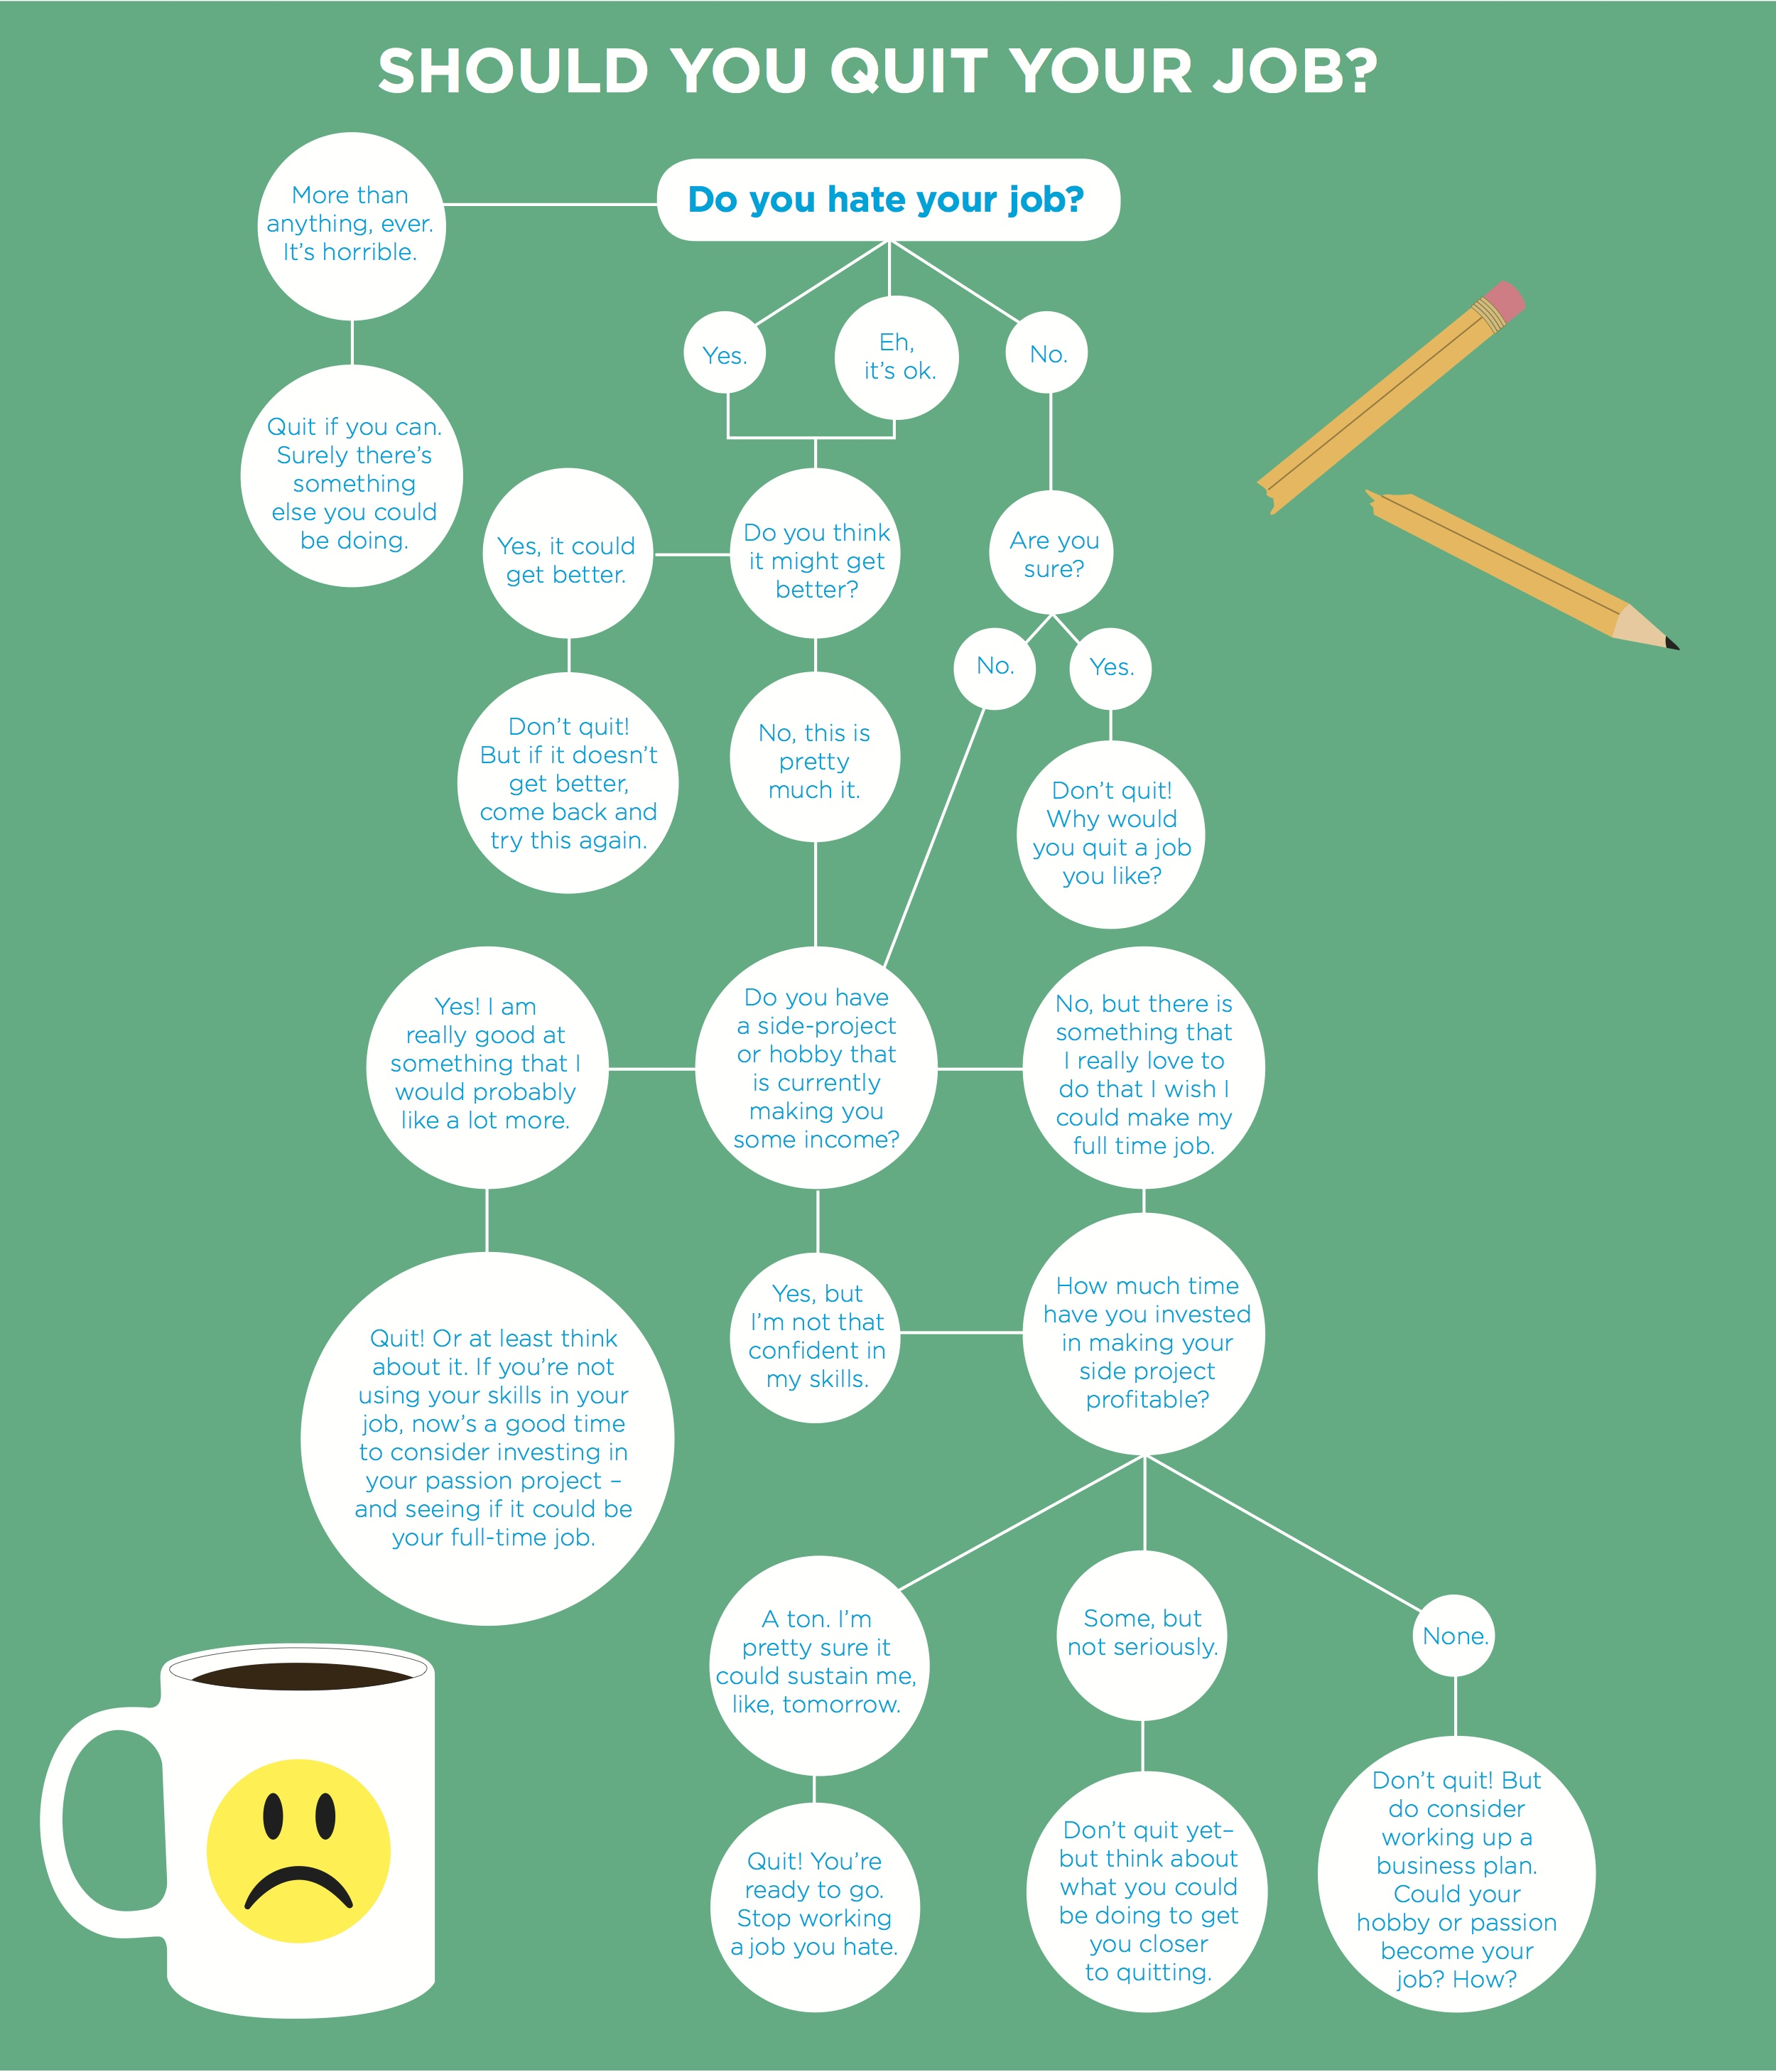 Should You Quit Your Day Job? Decision-Making Infographic